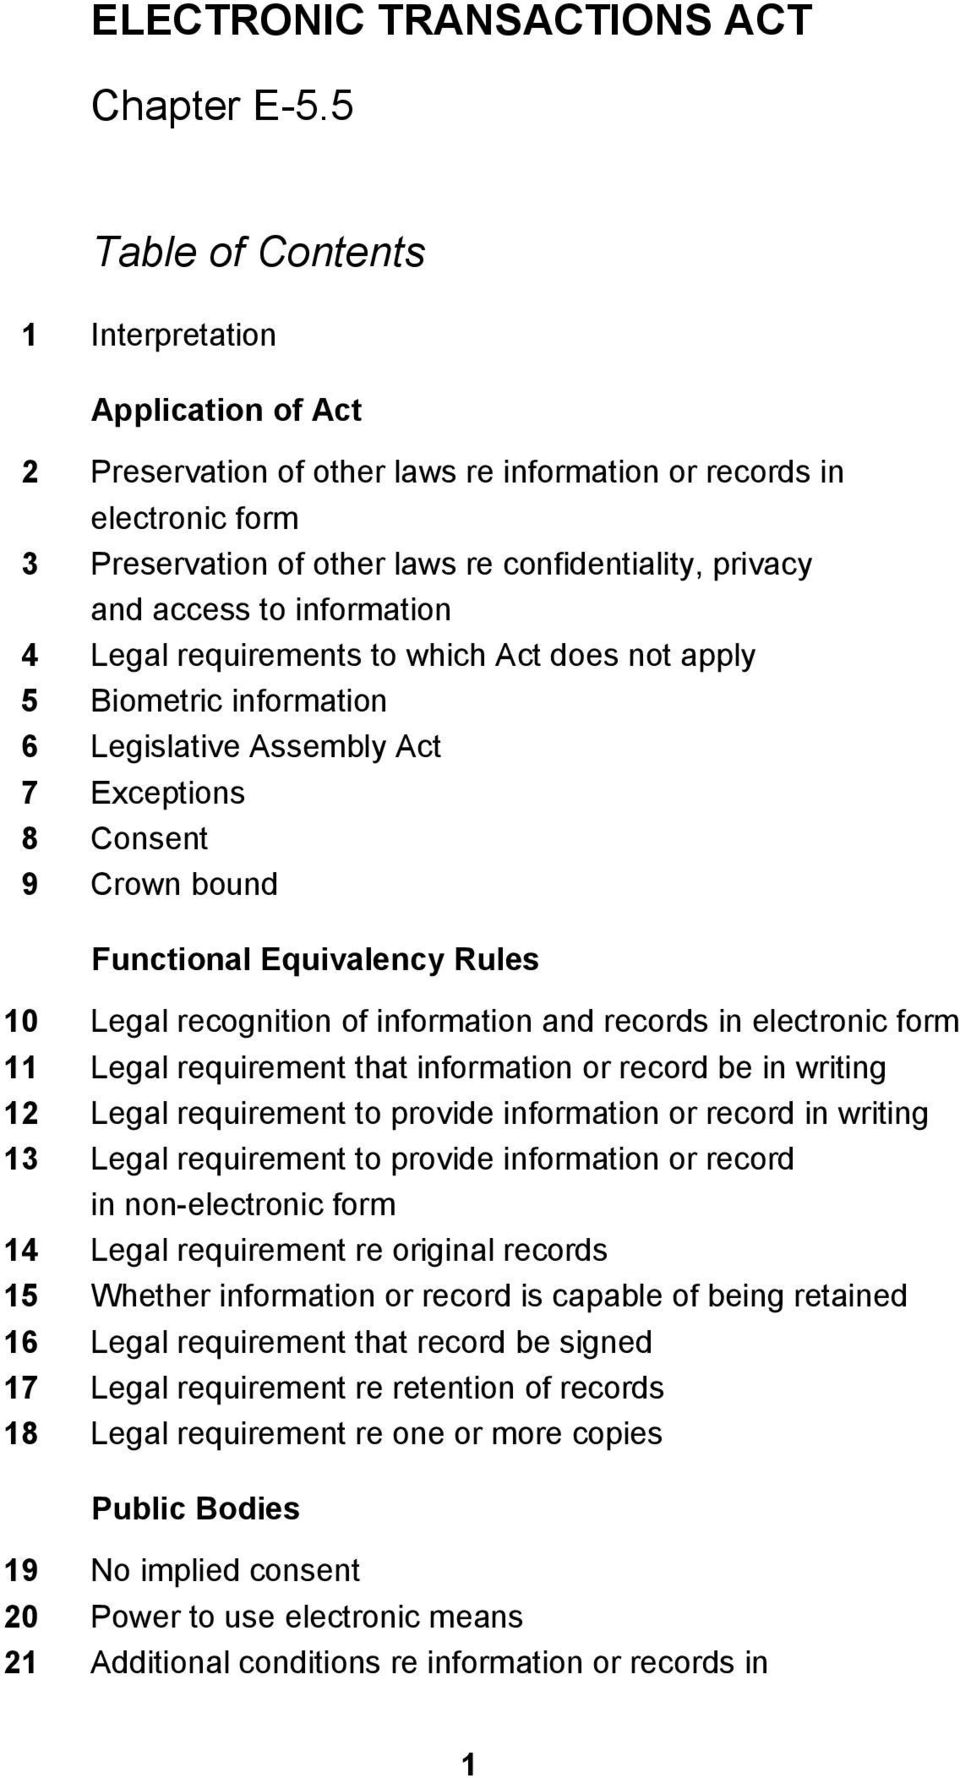 of information and records in electronic form 11 Legal requirement that information or record be in writing 12 Legal requirement to provide information or record in writing 13 Legal requirement to